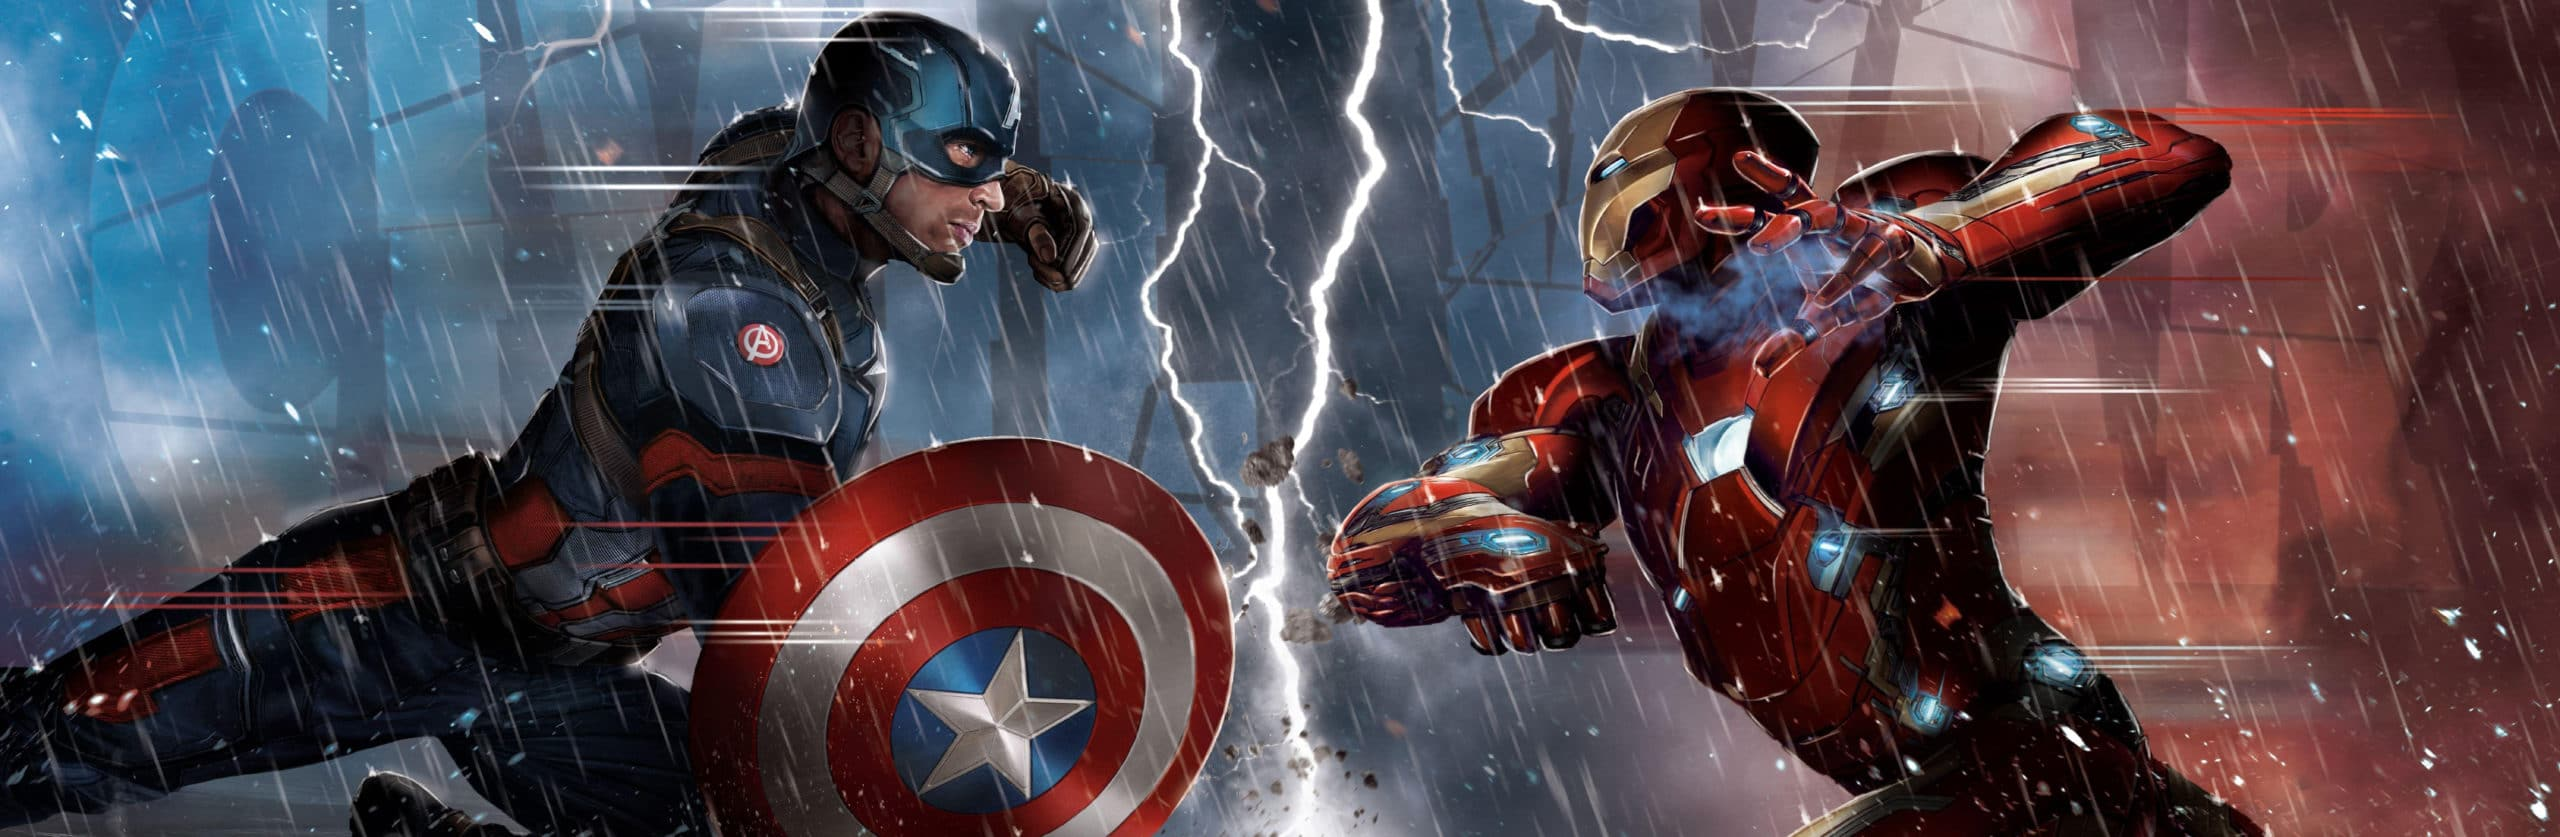 CAPTAIN AMERICA: CIVIL WAR RELEASES IN THEATERS WITH 3D ART FROM VIRTUOS